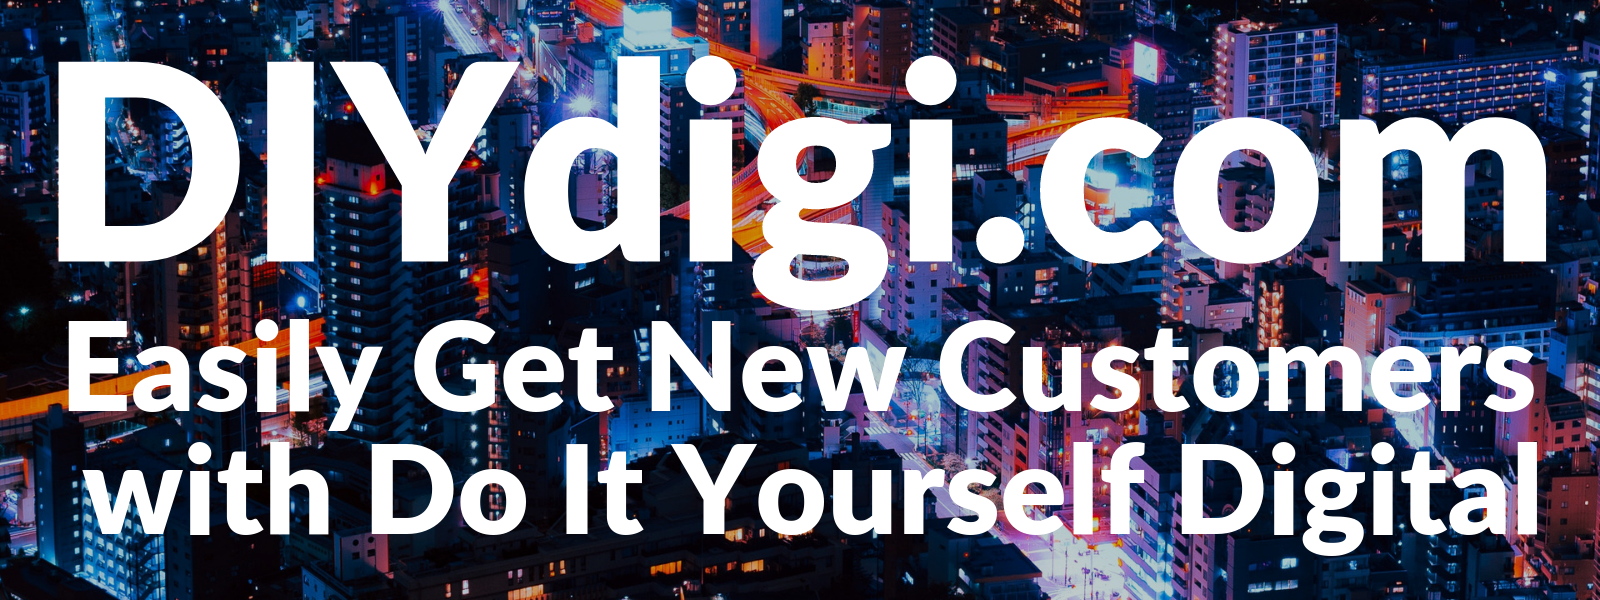 DIYdigi - Easily Get New Customers with Do It Yourself Digital